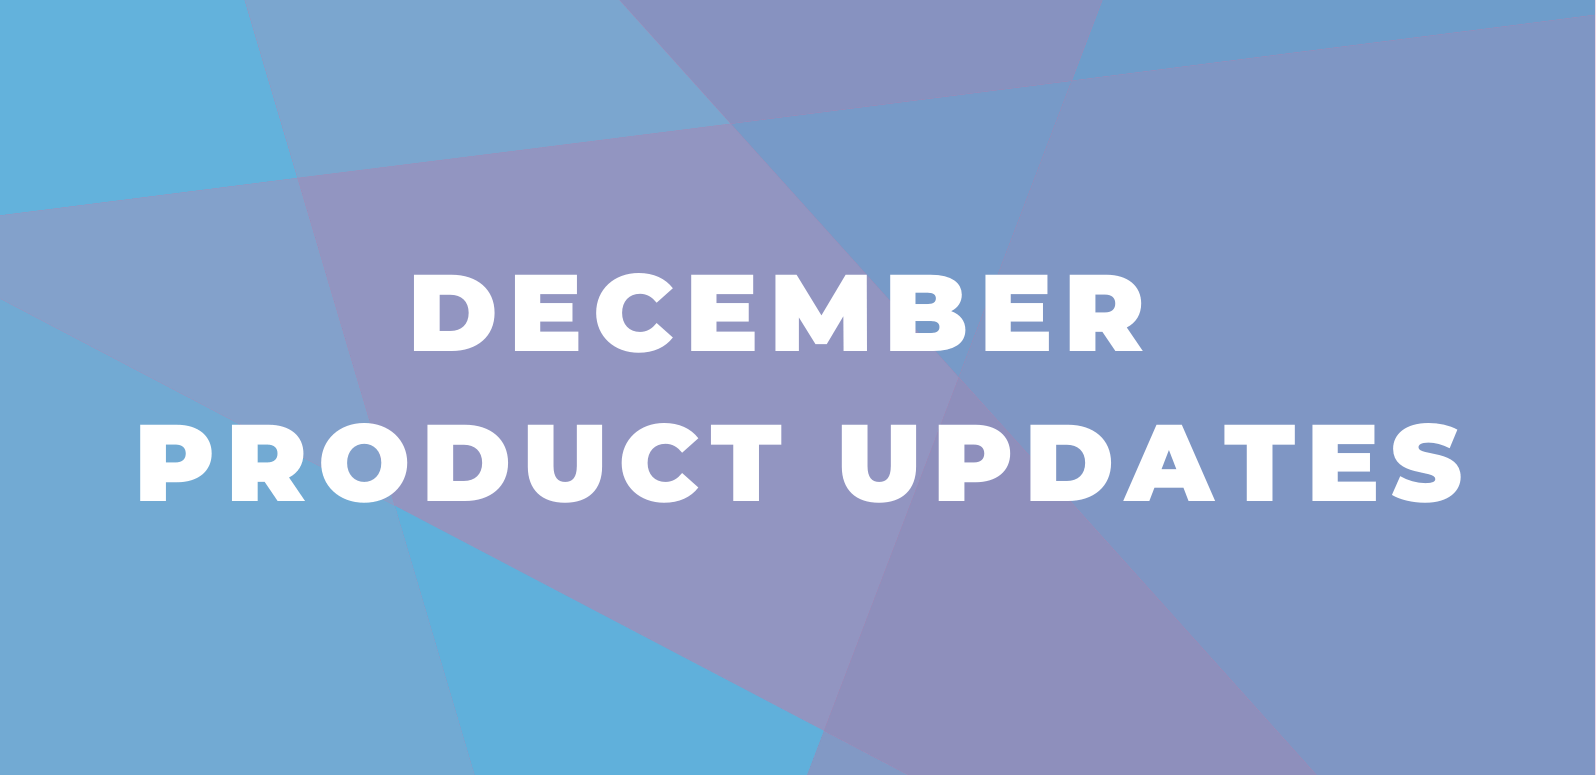 December 2019 Product Updates